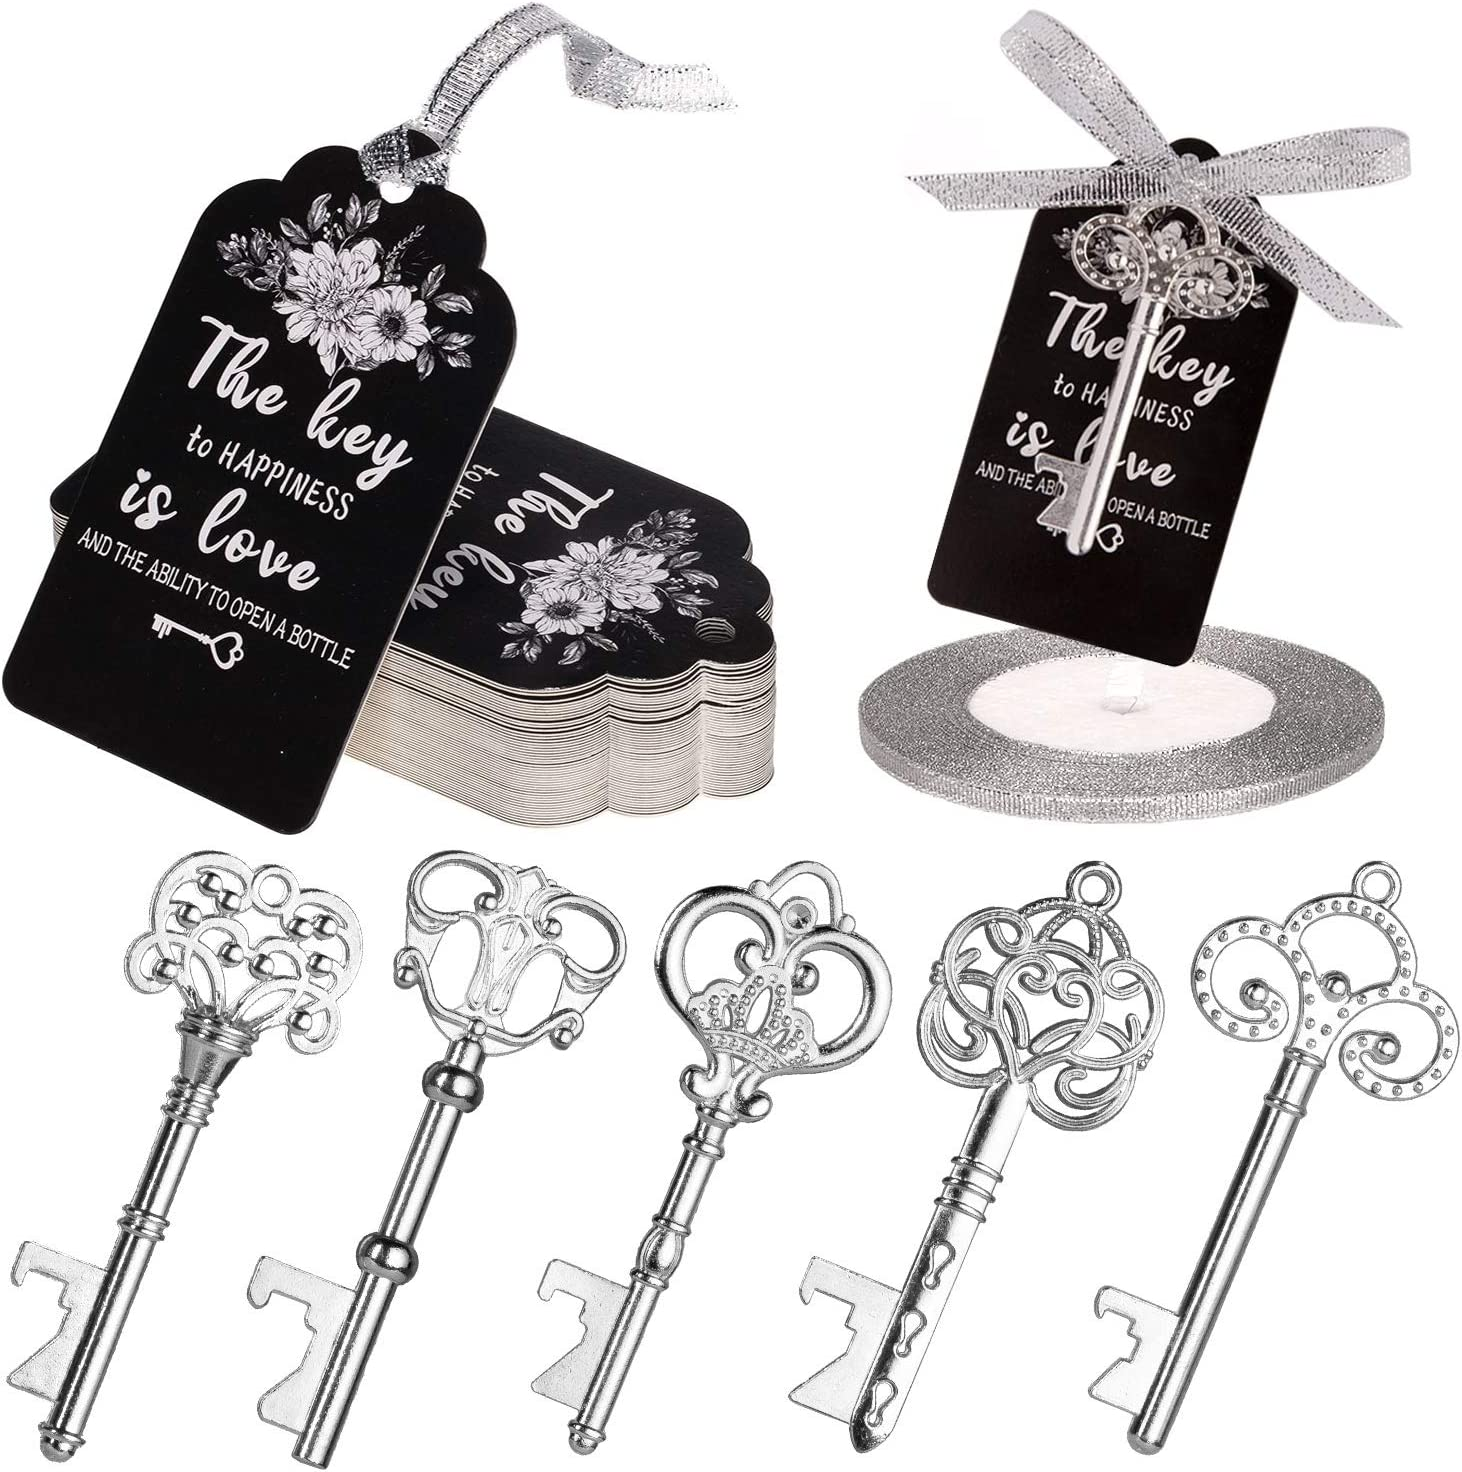 Rustic Wedding Favors Gifts Skeleton Key Bottle Opener with Tag Ribbon for Guest